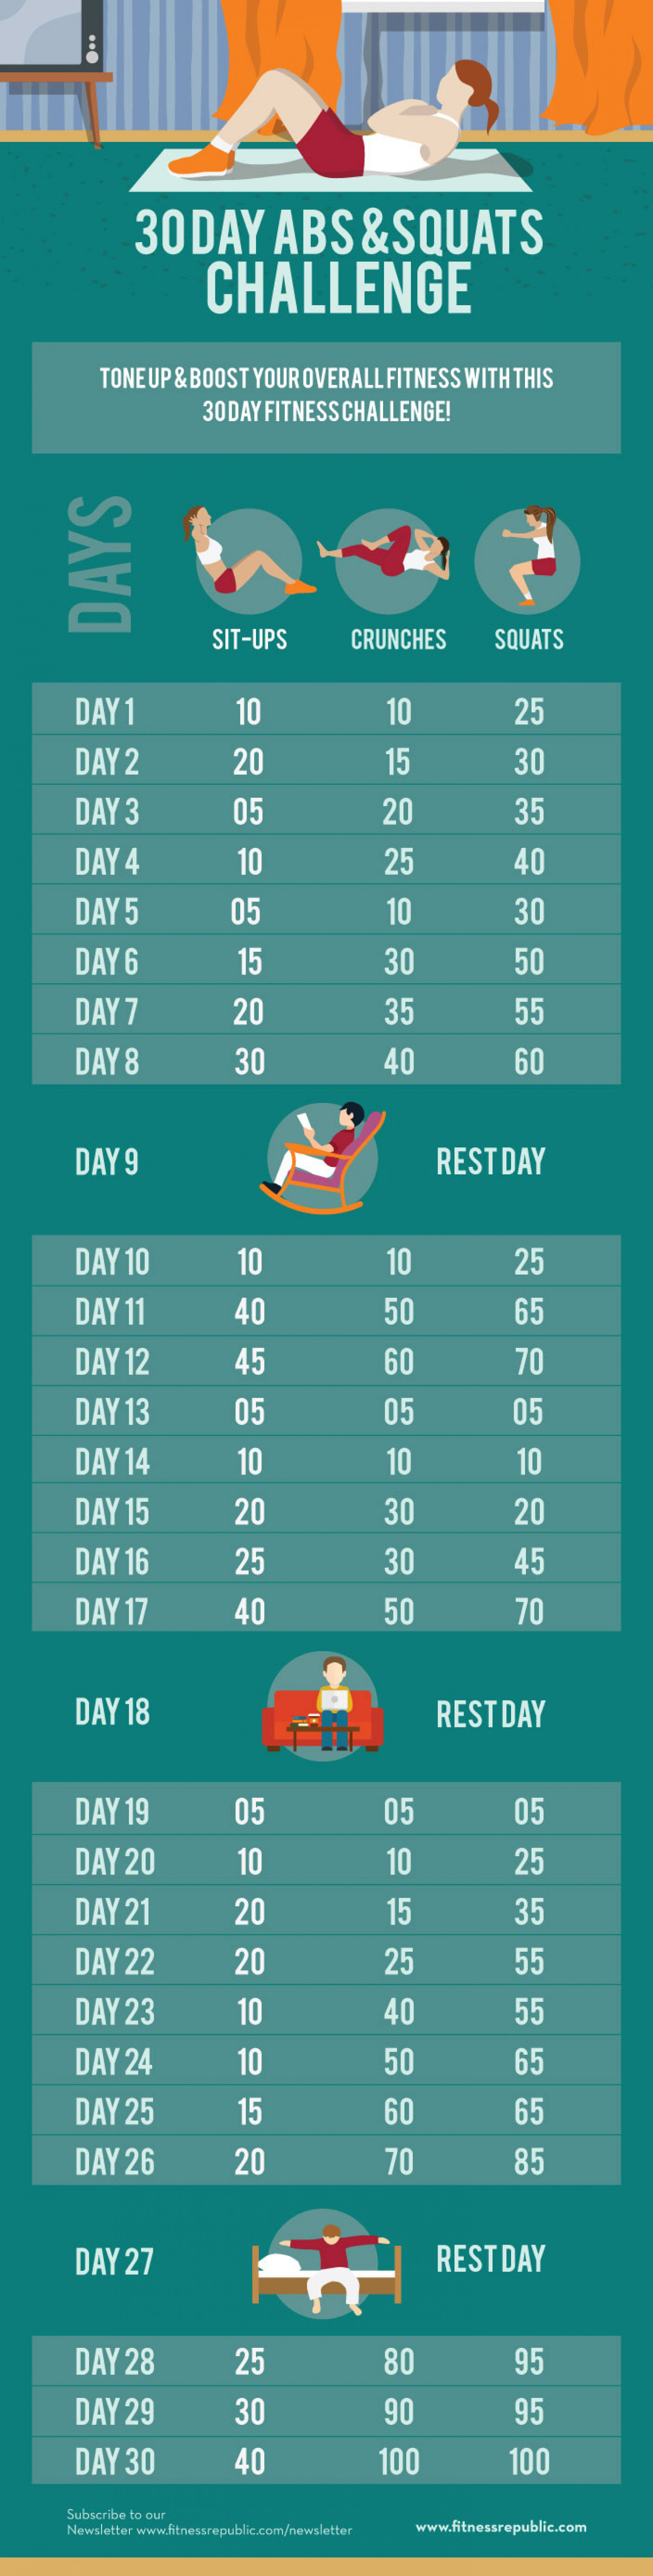 30 day abs and